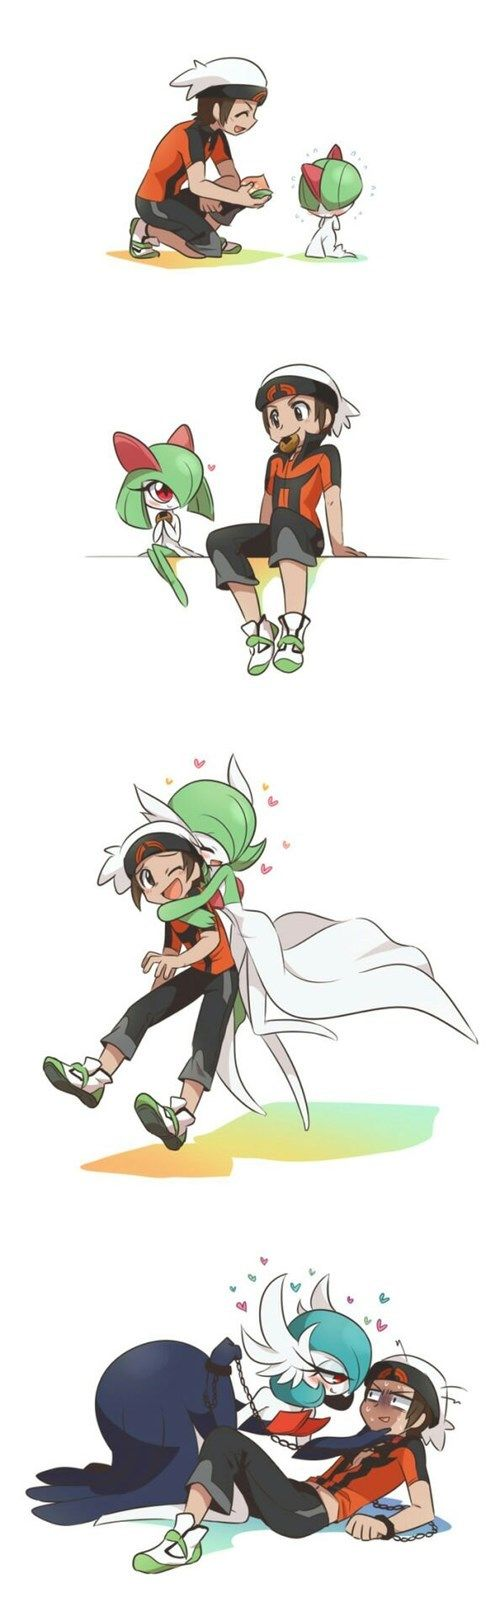 That's What You Get for Training a Naughty Gardevoir ಠ_ಠ